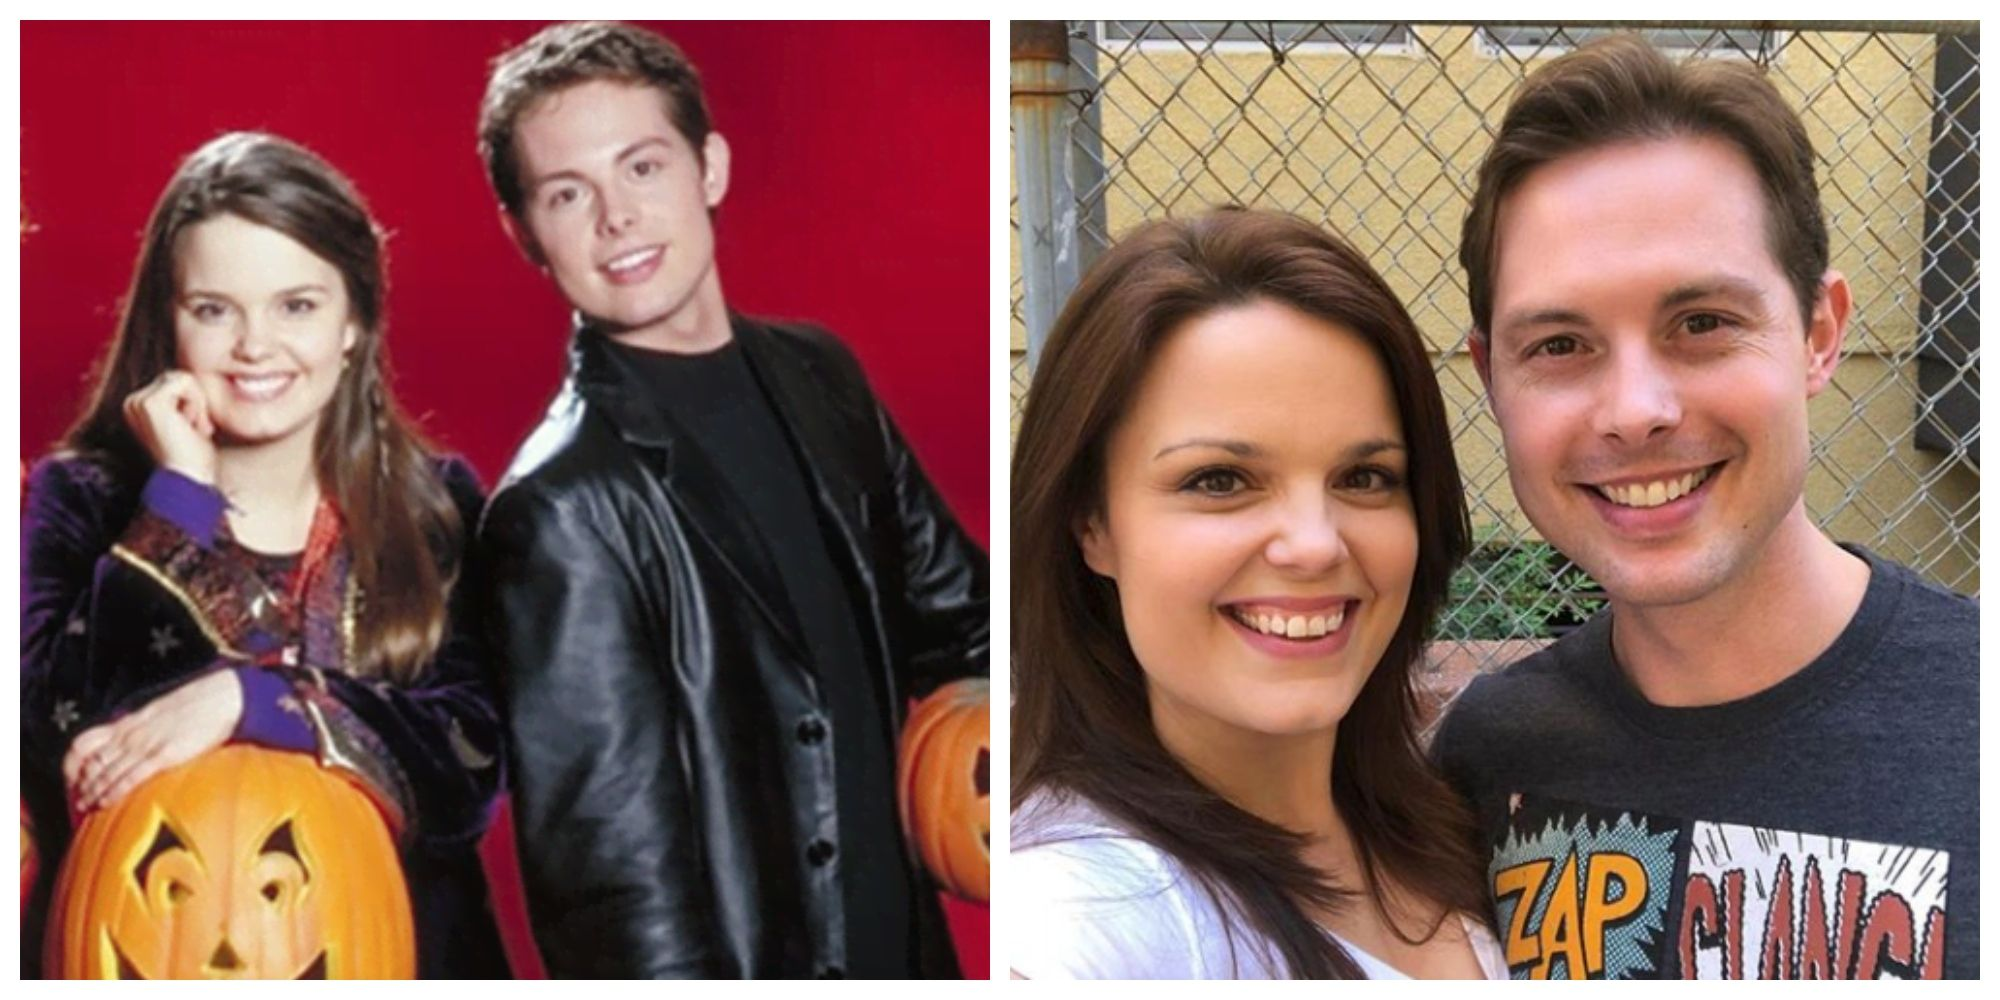 Kimberly J. Brown and Daniel Kountz from Disney\u0027s